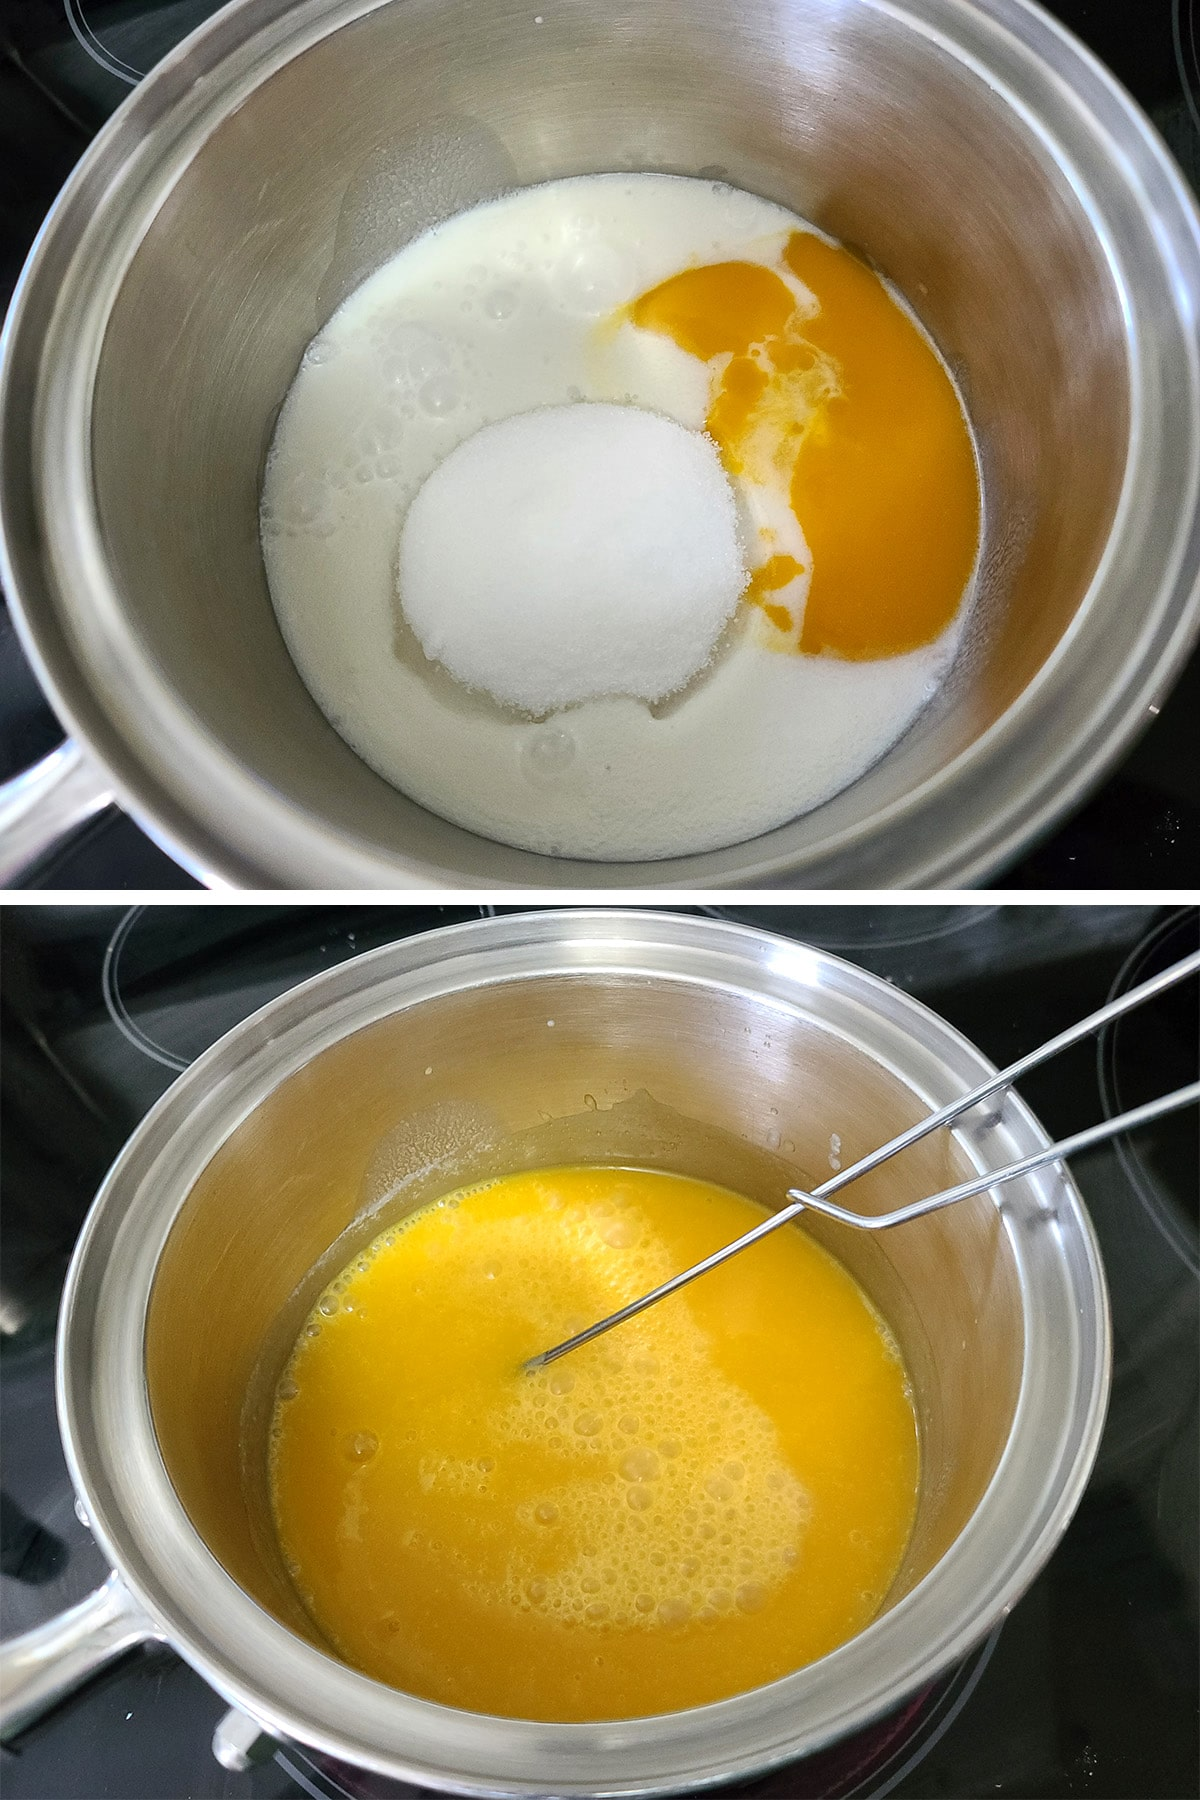 Coconut milk, sugar, and mango being mixed in a small pot.